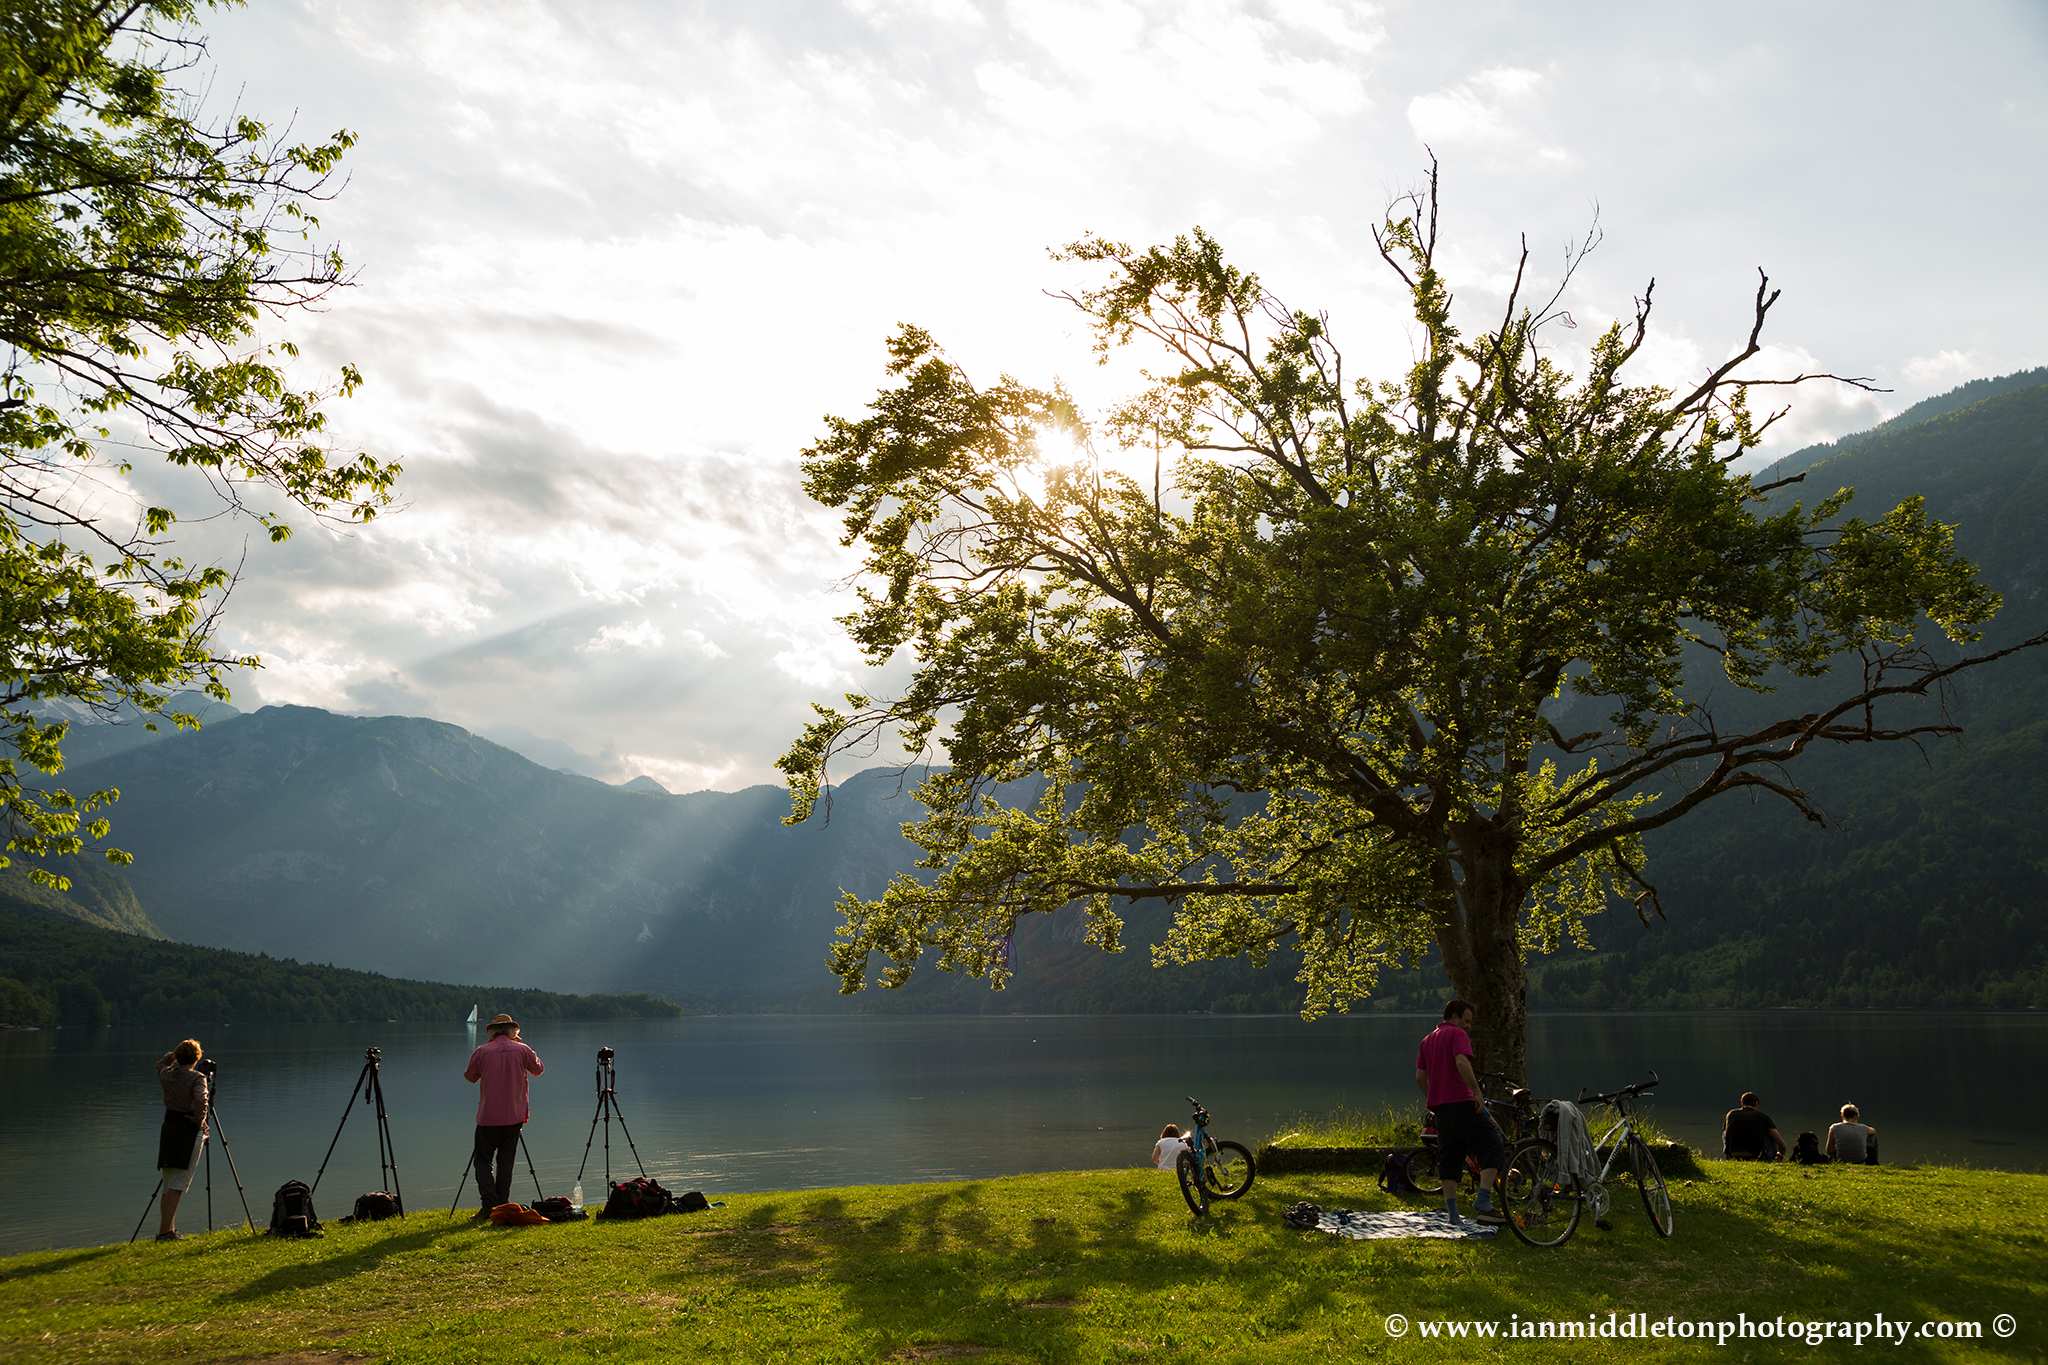 Workshop participants photographing beautiful light and clouds scattering over Bohinj Lake,Triglav National Park, Slovenia.